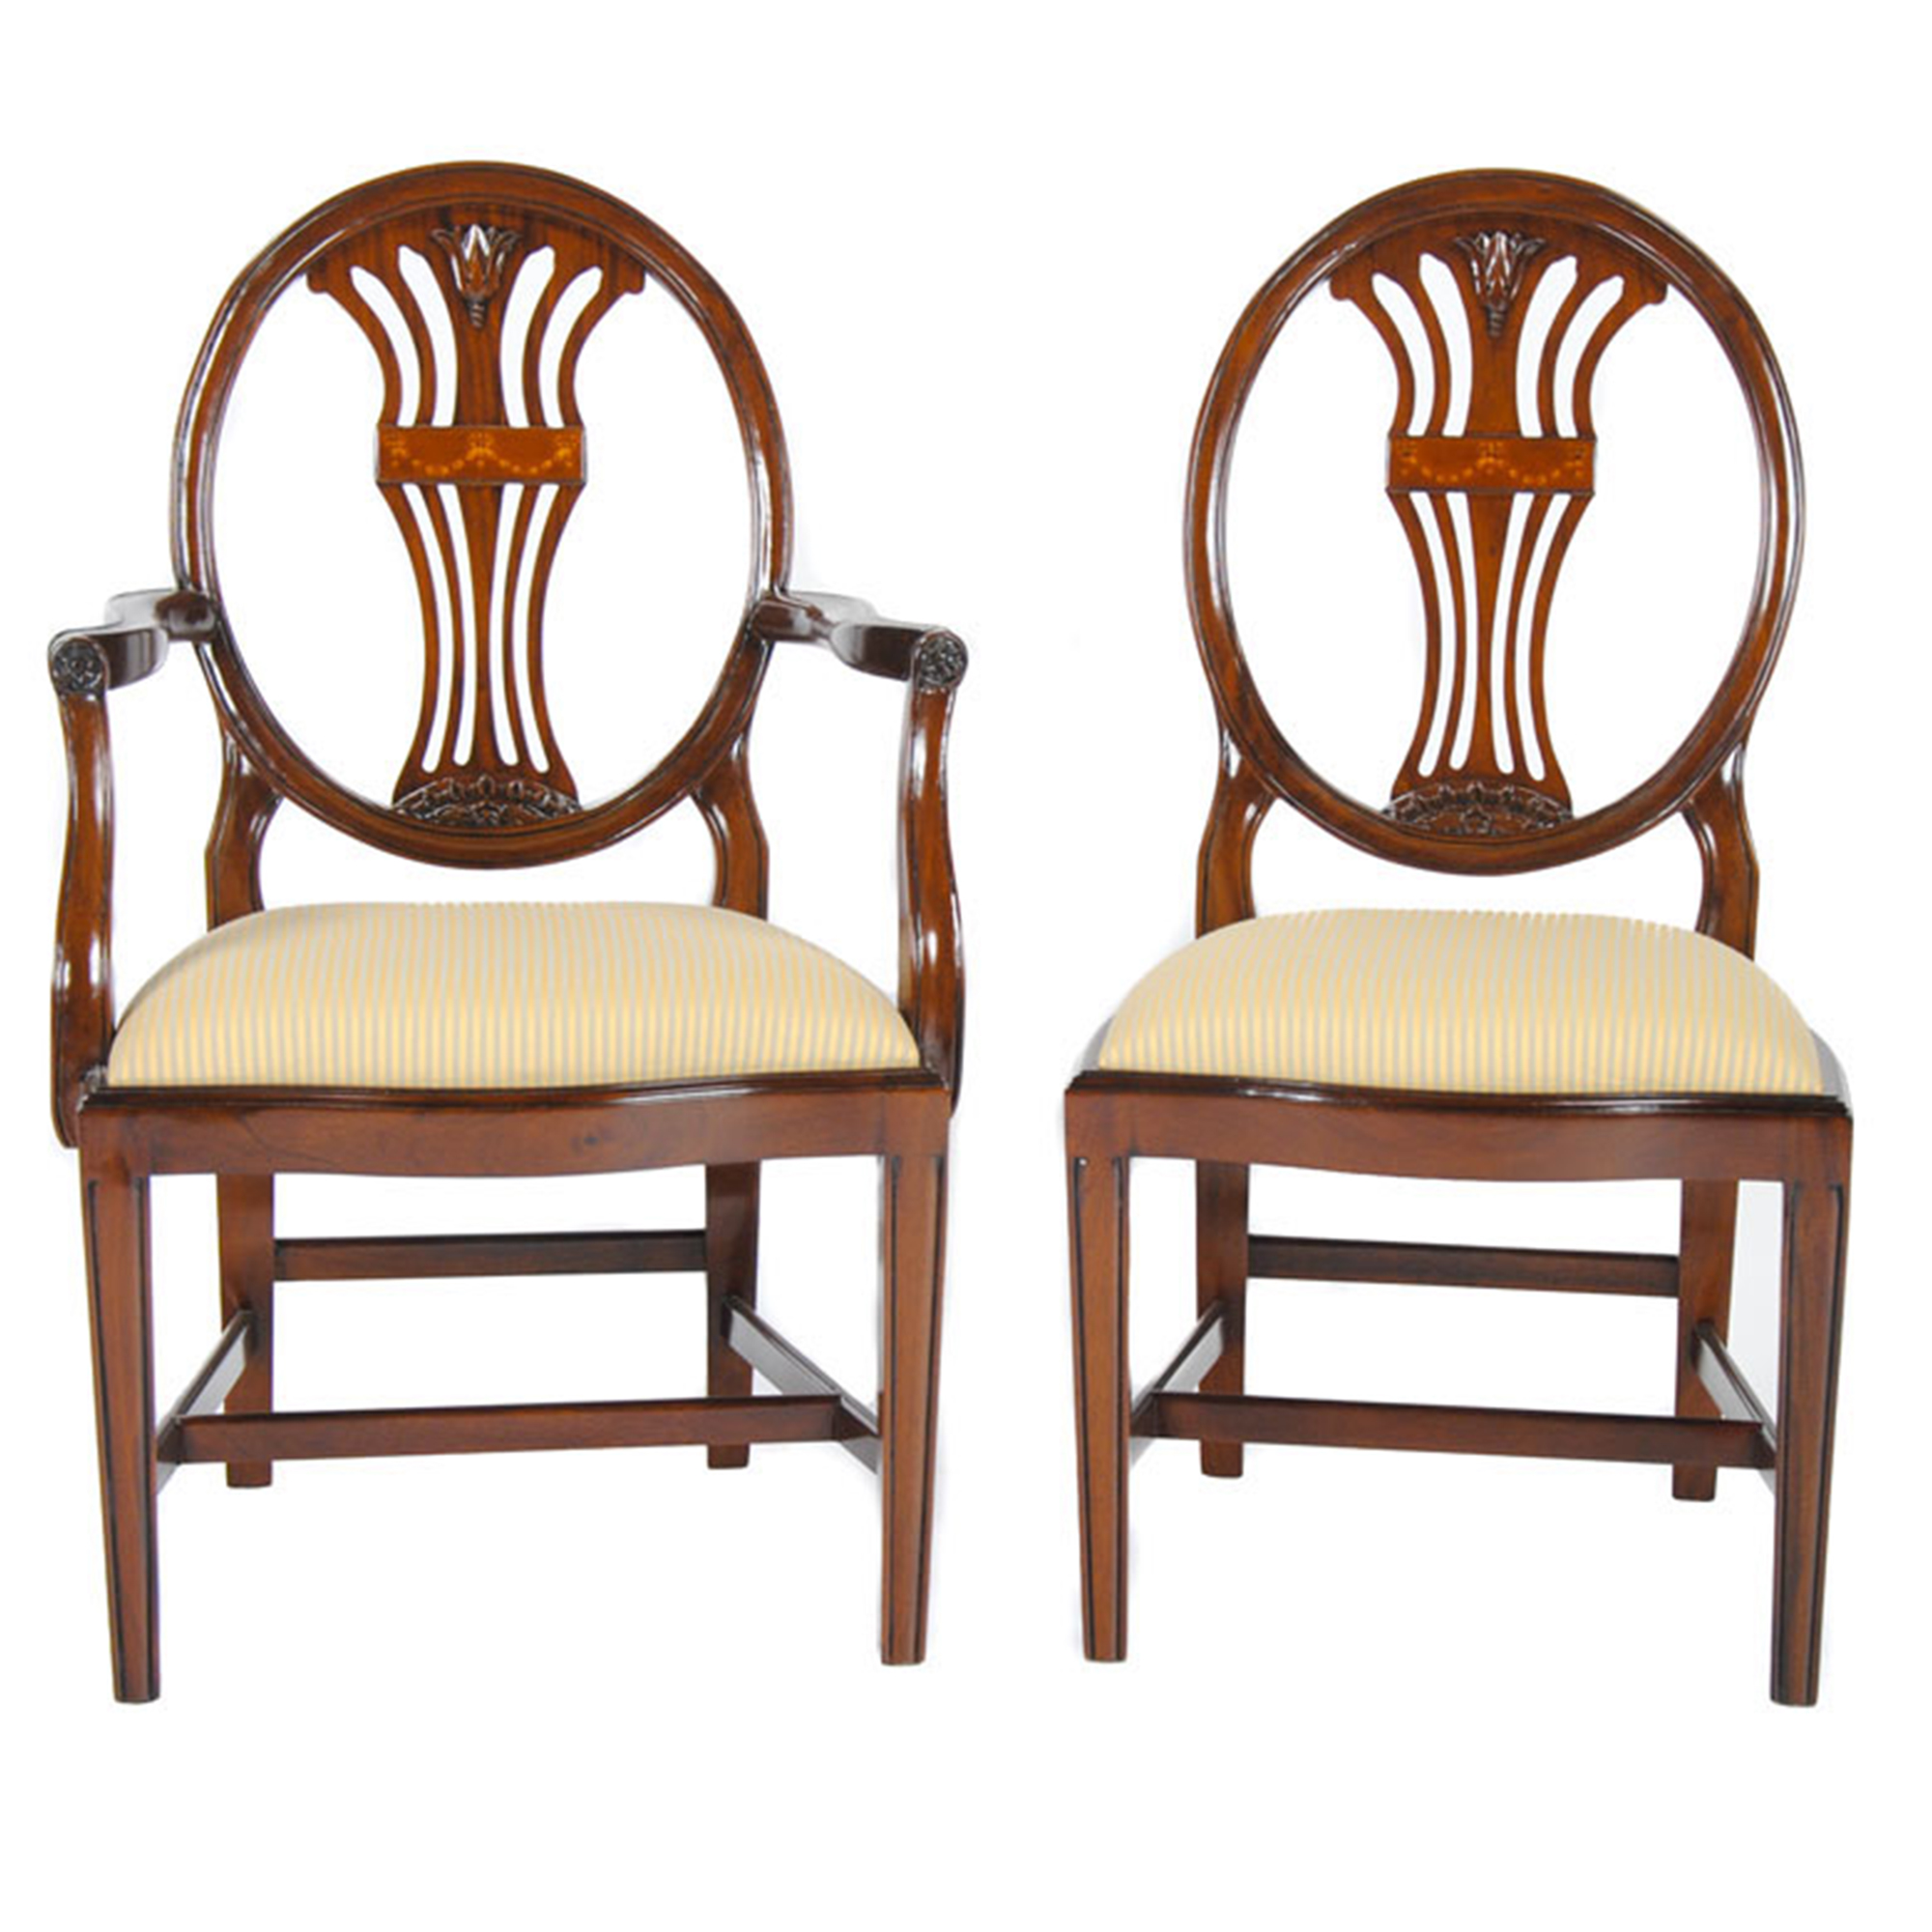 Oval Back Chair Oval Back Inlaid Chairs Set Of 10 Niagara Furniture